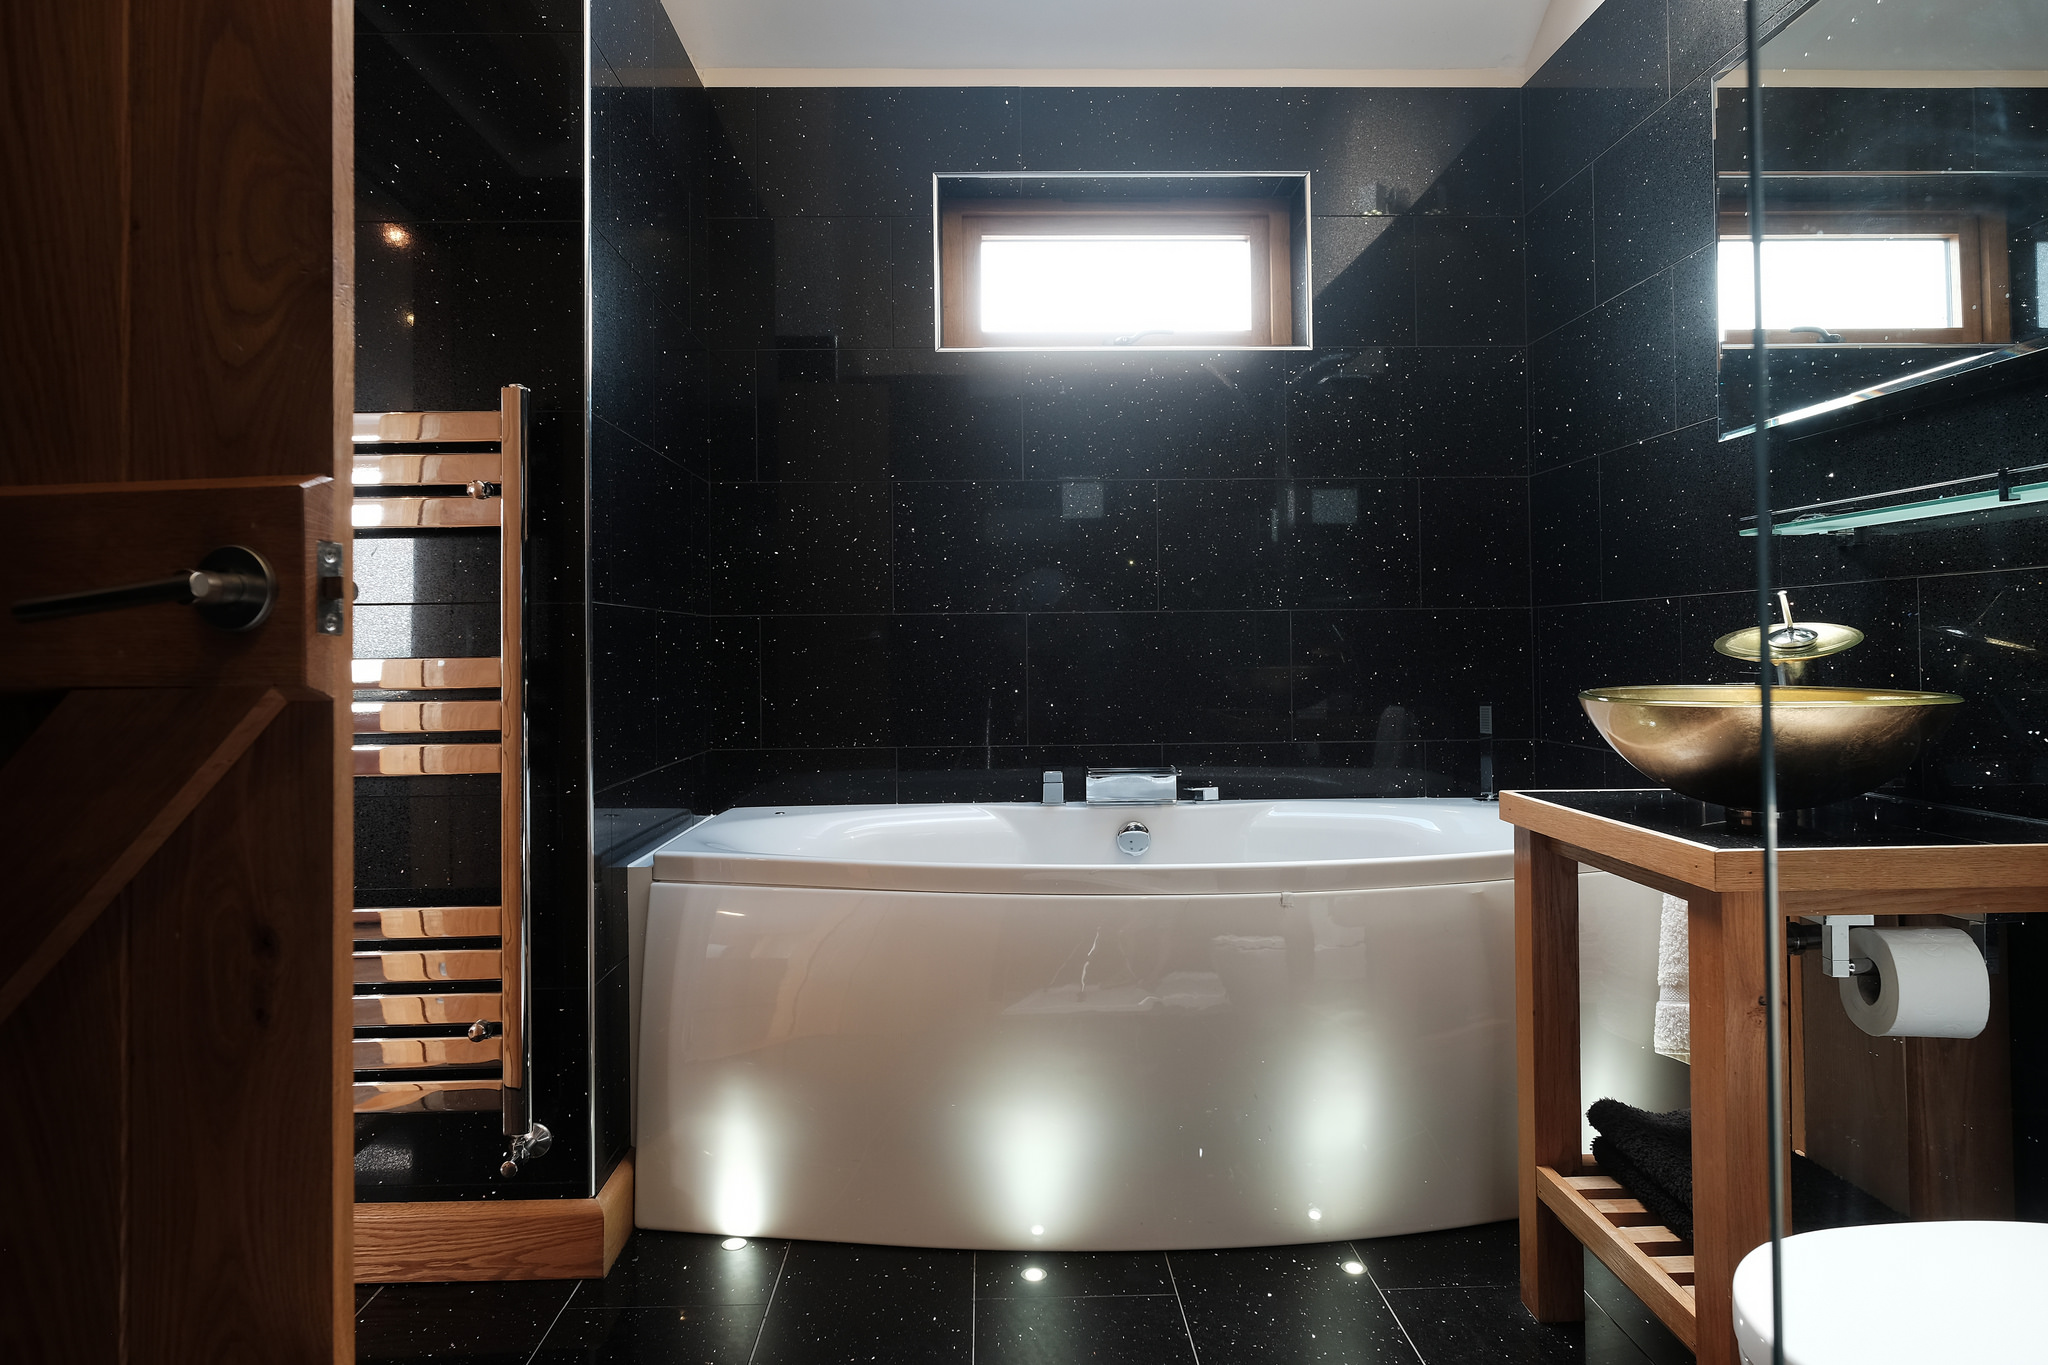 En-suite bathroom with spa bath